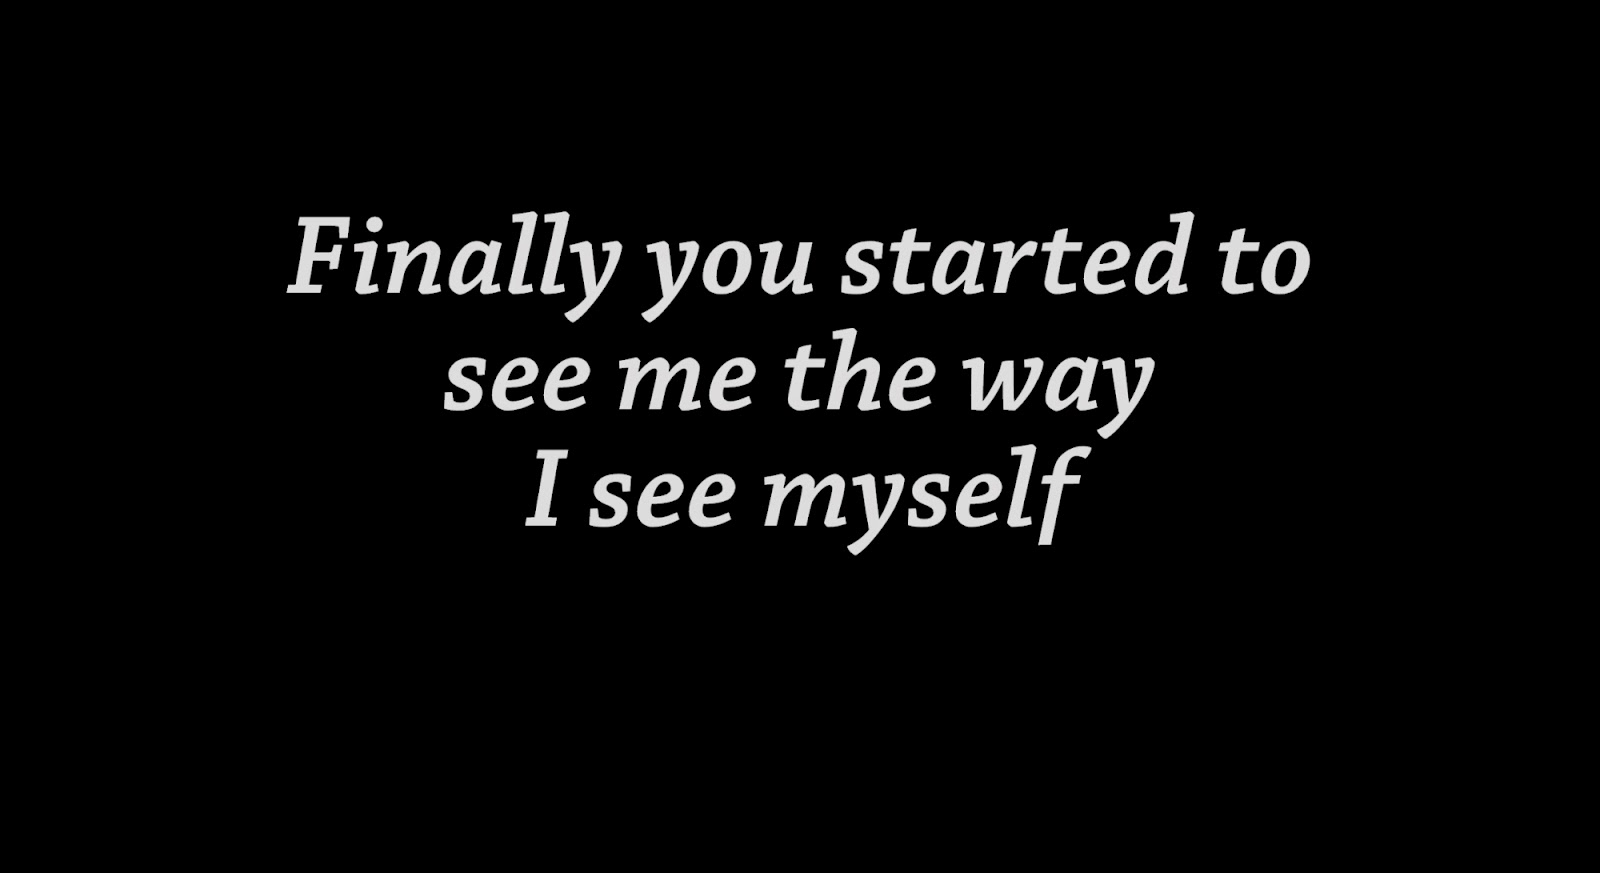 Finally you started to see me the way I see myself